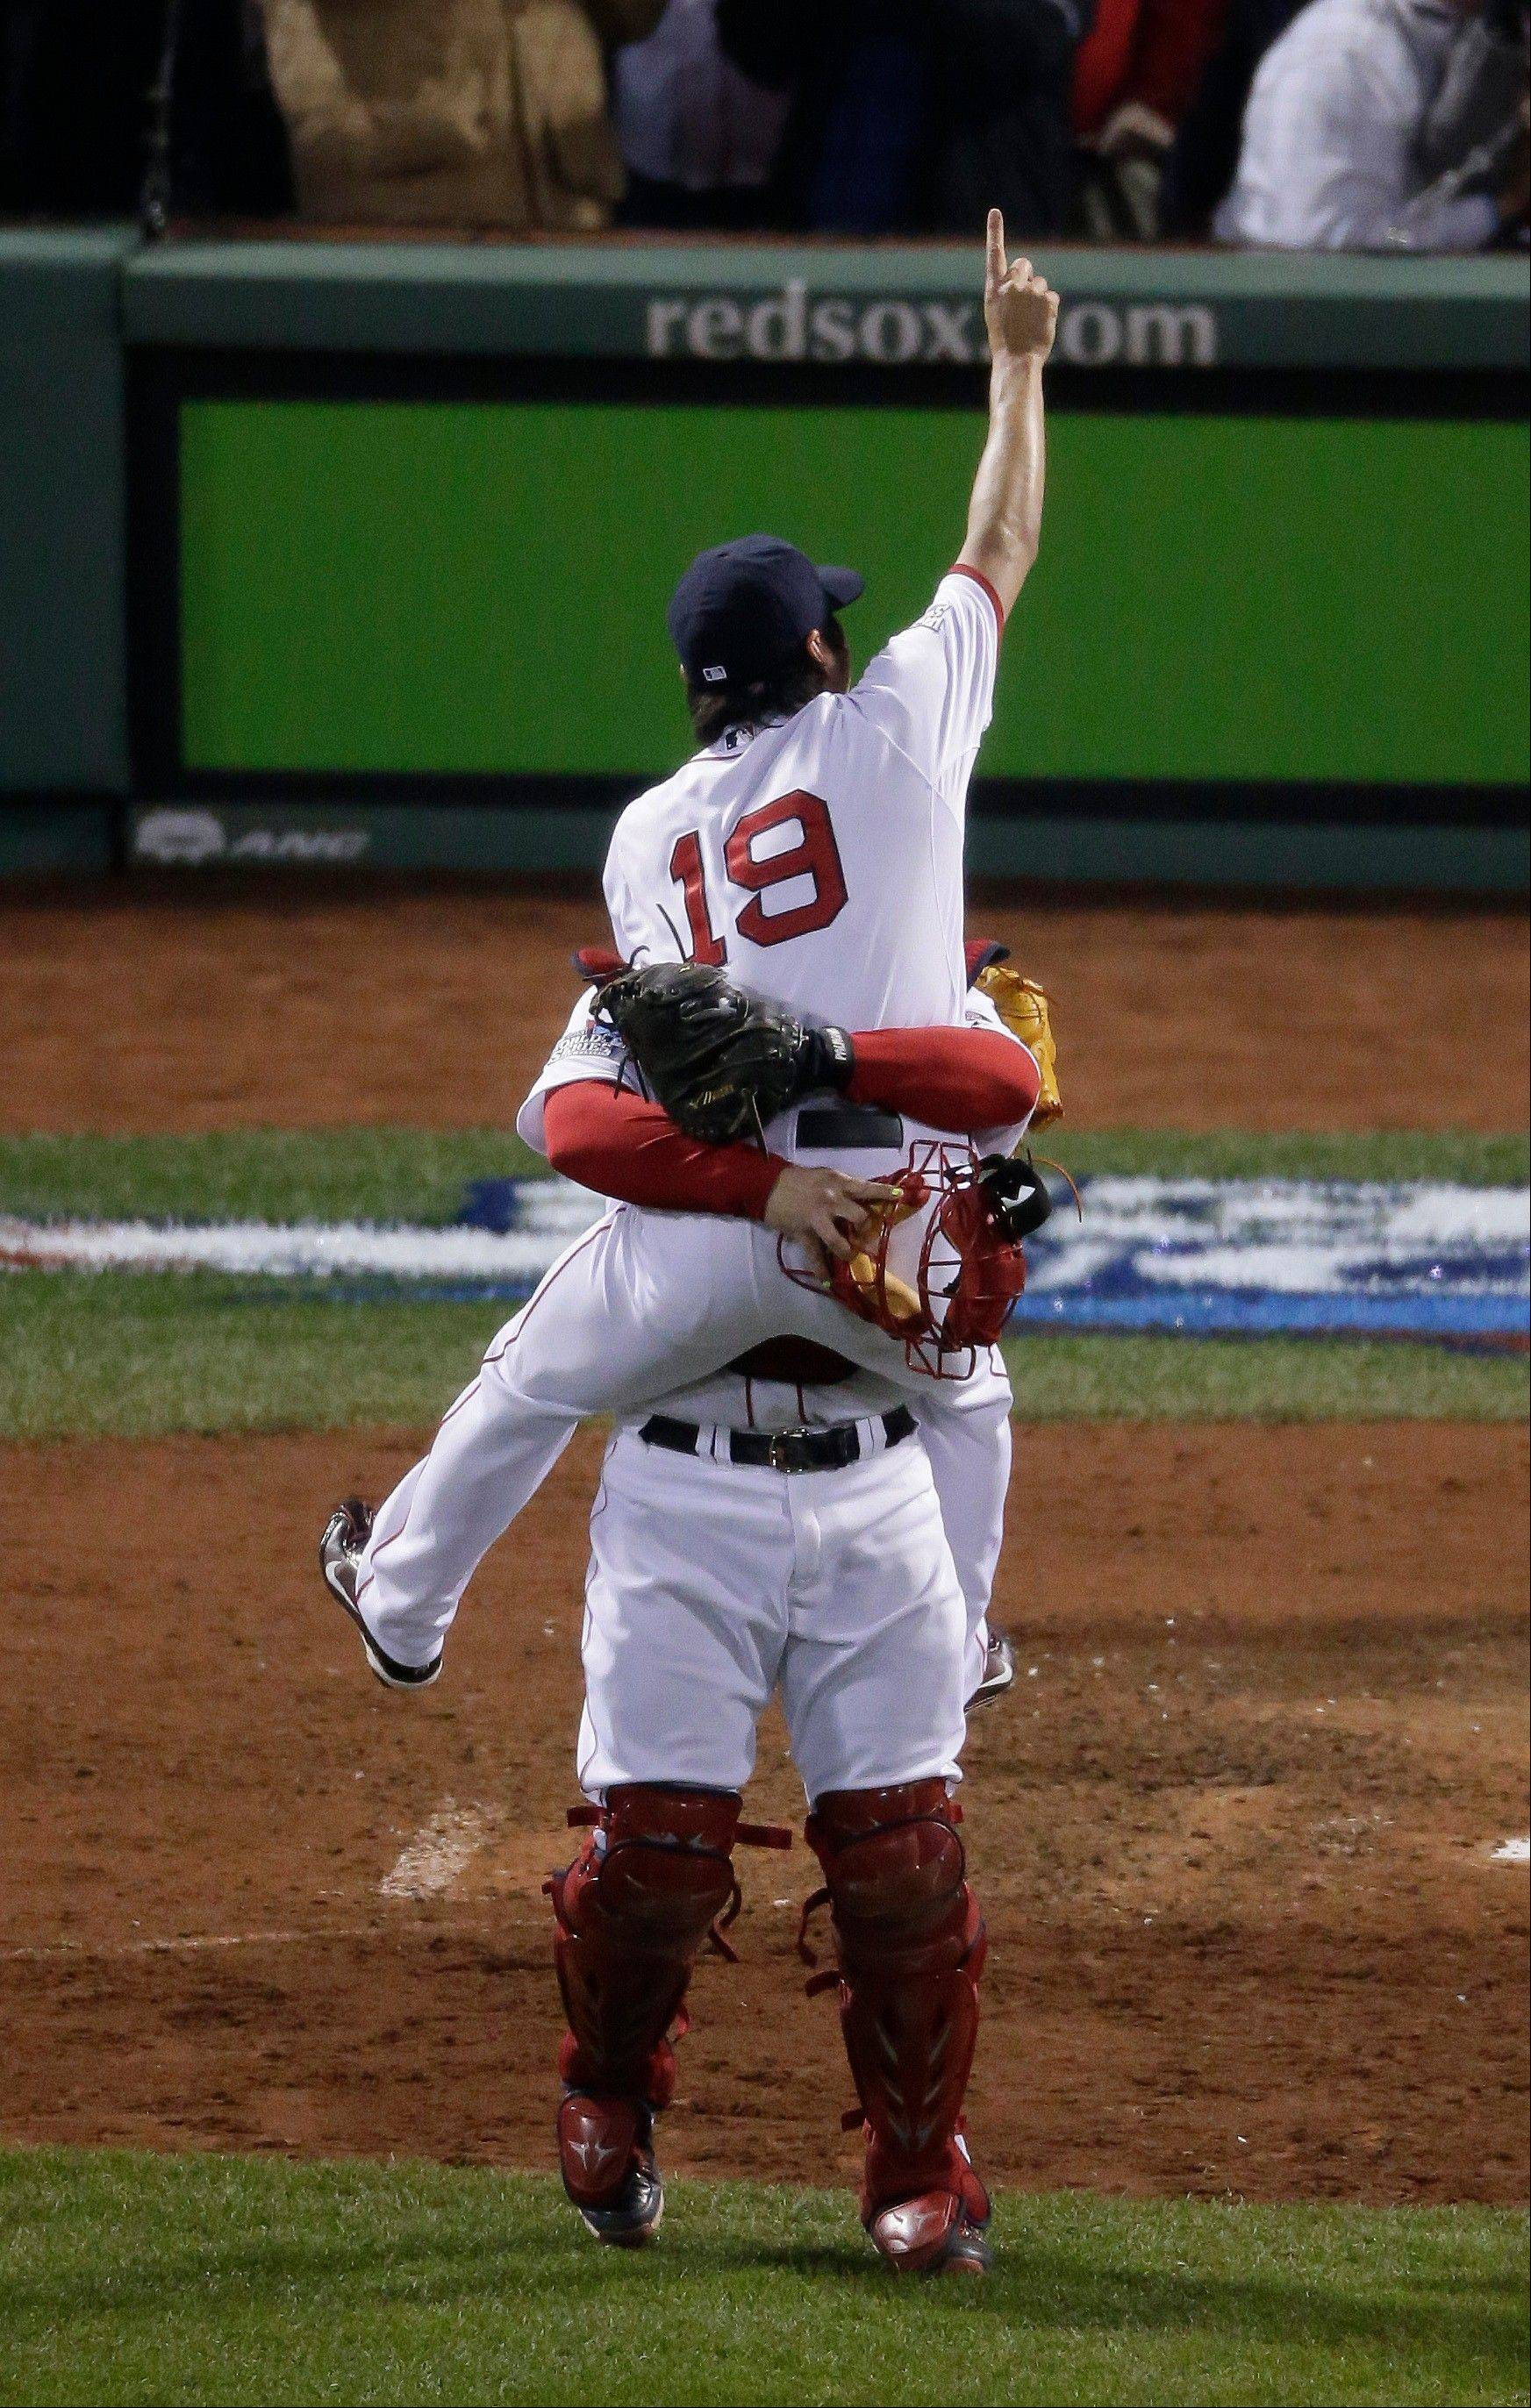 Boston Red Sox relief pitcher Koji Uehara (19) and catcher David Ross celebrate after Boston defeated the St. Louis Cardinals in Game 6 of baseball's World Series Wednesday, Oct. 30, 2013, in Boston. The Red Sox won 6-1 to win the series.